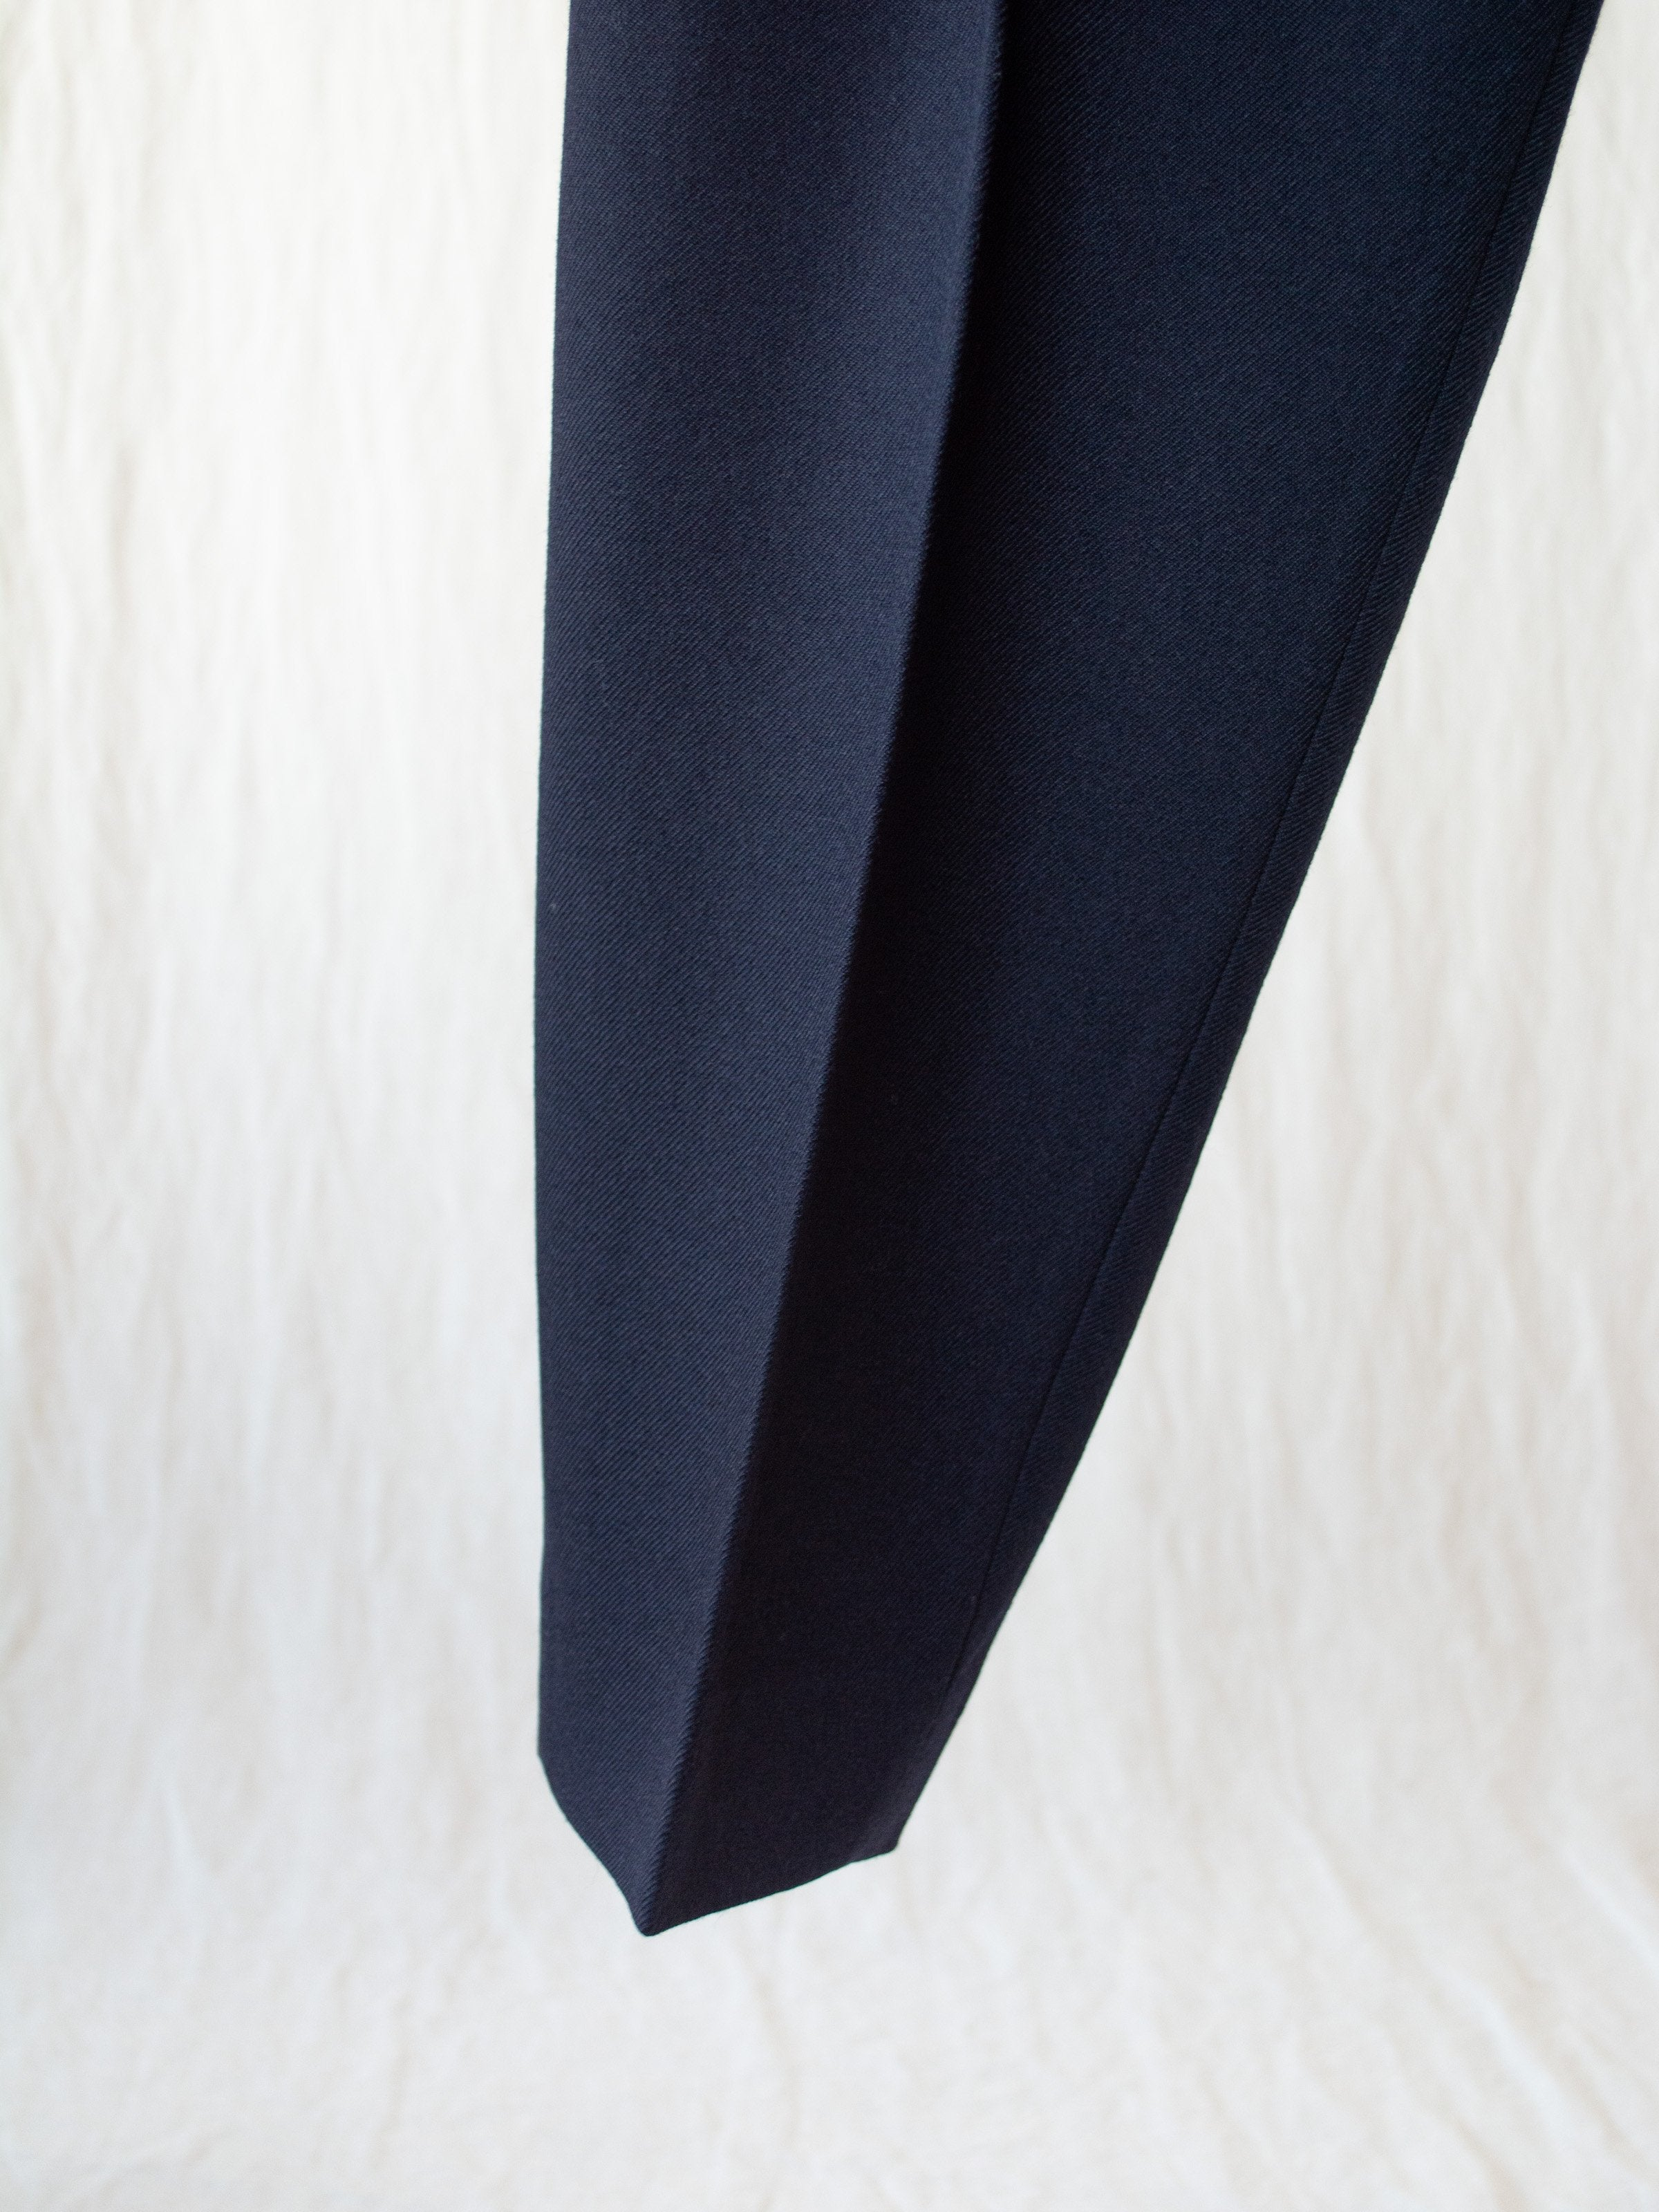 Namu Shop - Phlannel New Zealand Wool Ghurka Trousers - Navy